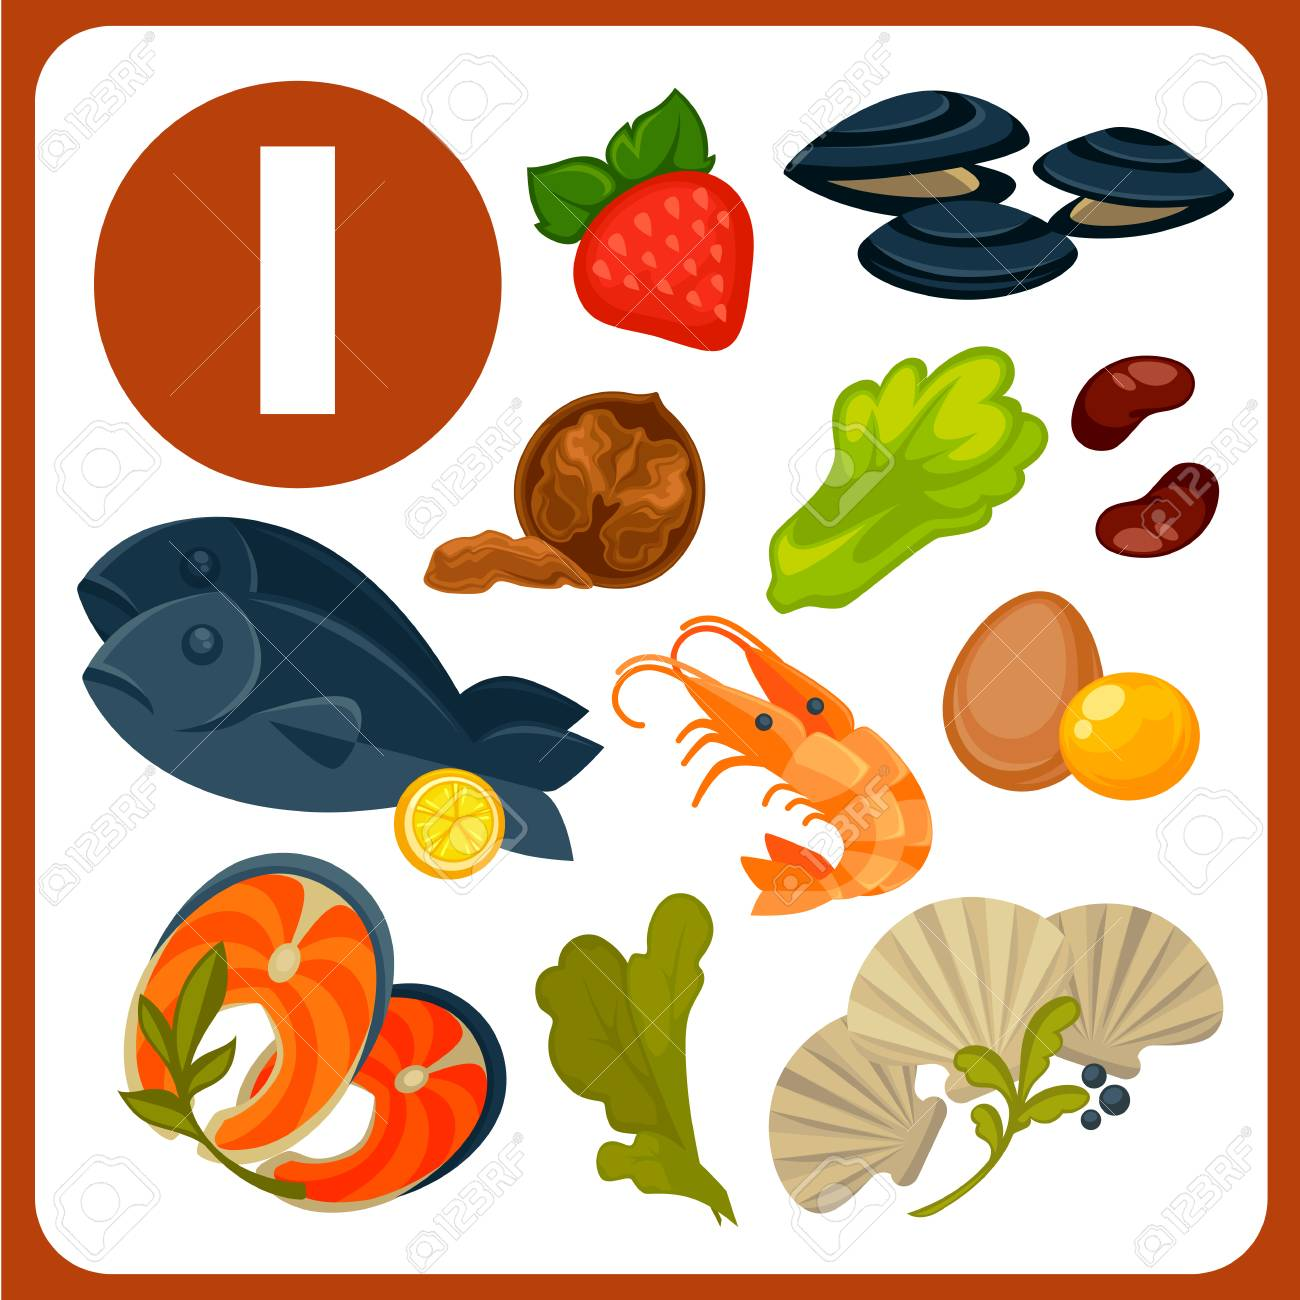 Products with high iodine content vector illustrations. Tasty oysters, red fish, king shrimps, egg yolks, fresh seaweed, nutritious walnut, sweet strawberry, lettuce leaves and healthy beans. - 82262763